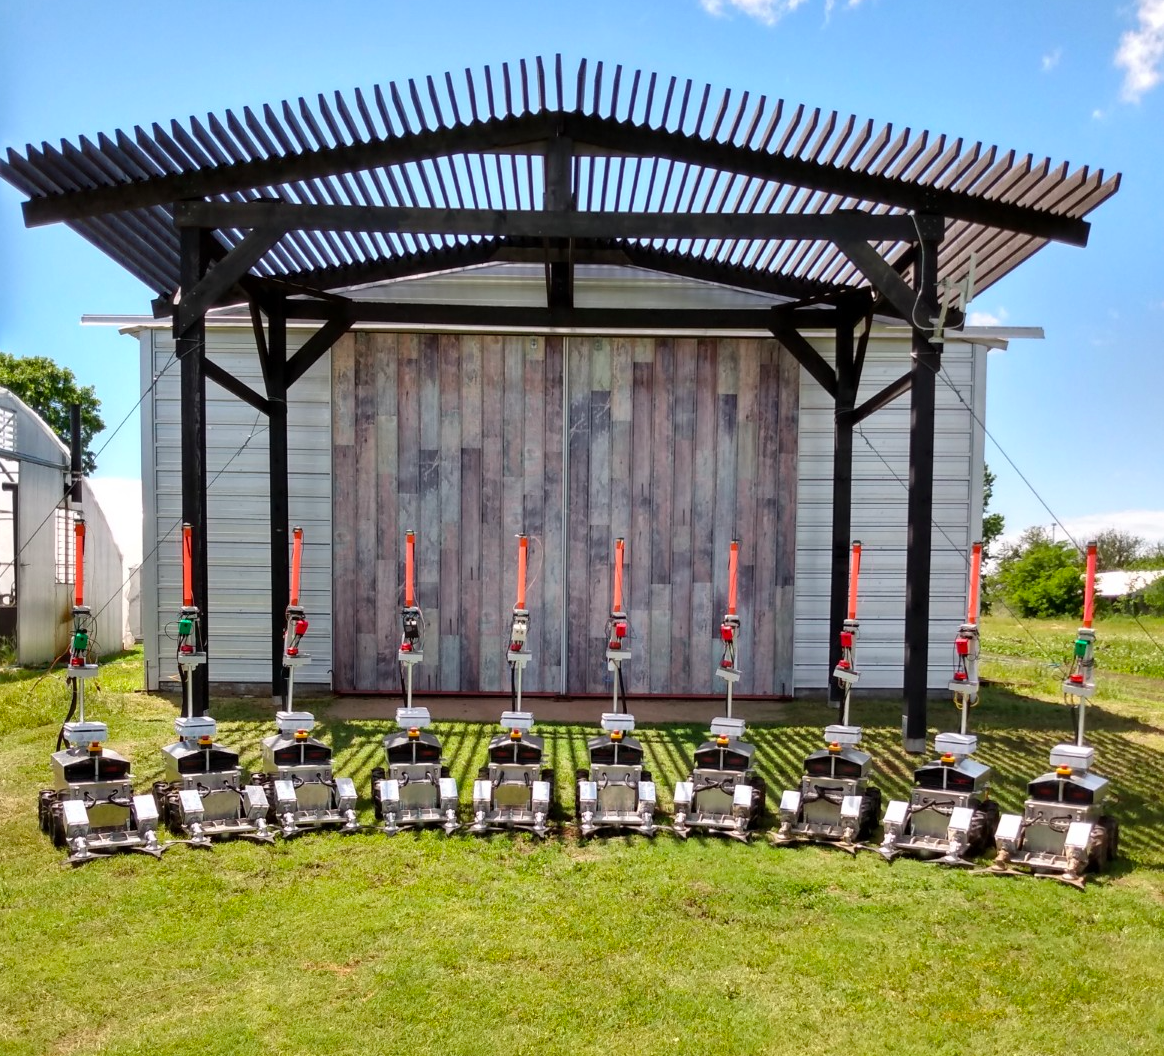 A row of the robots lined up in front of a shed.